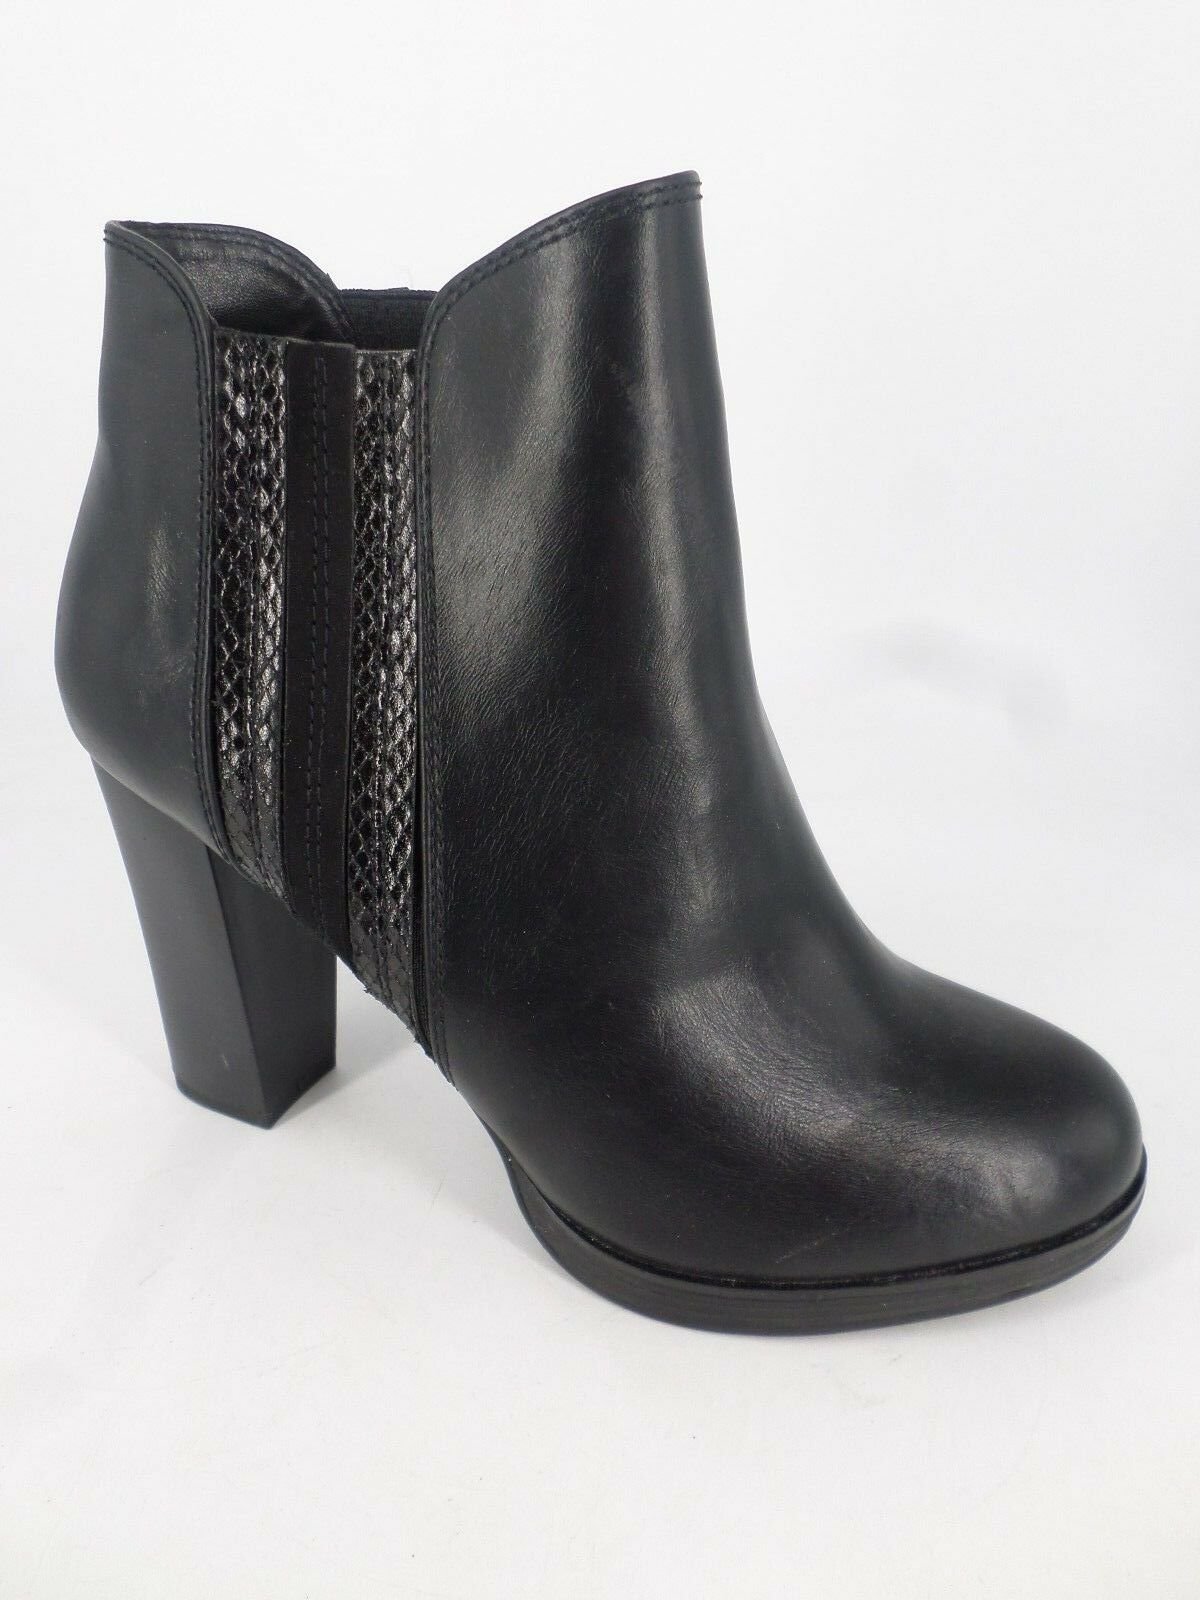 Anna Field Ladies High Heeled Ankle Boots Black UK 6 EU 39 LN085 RR 04